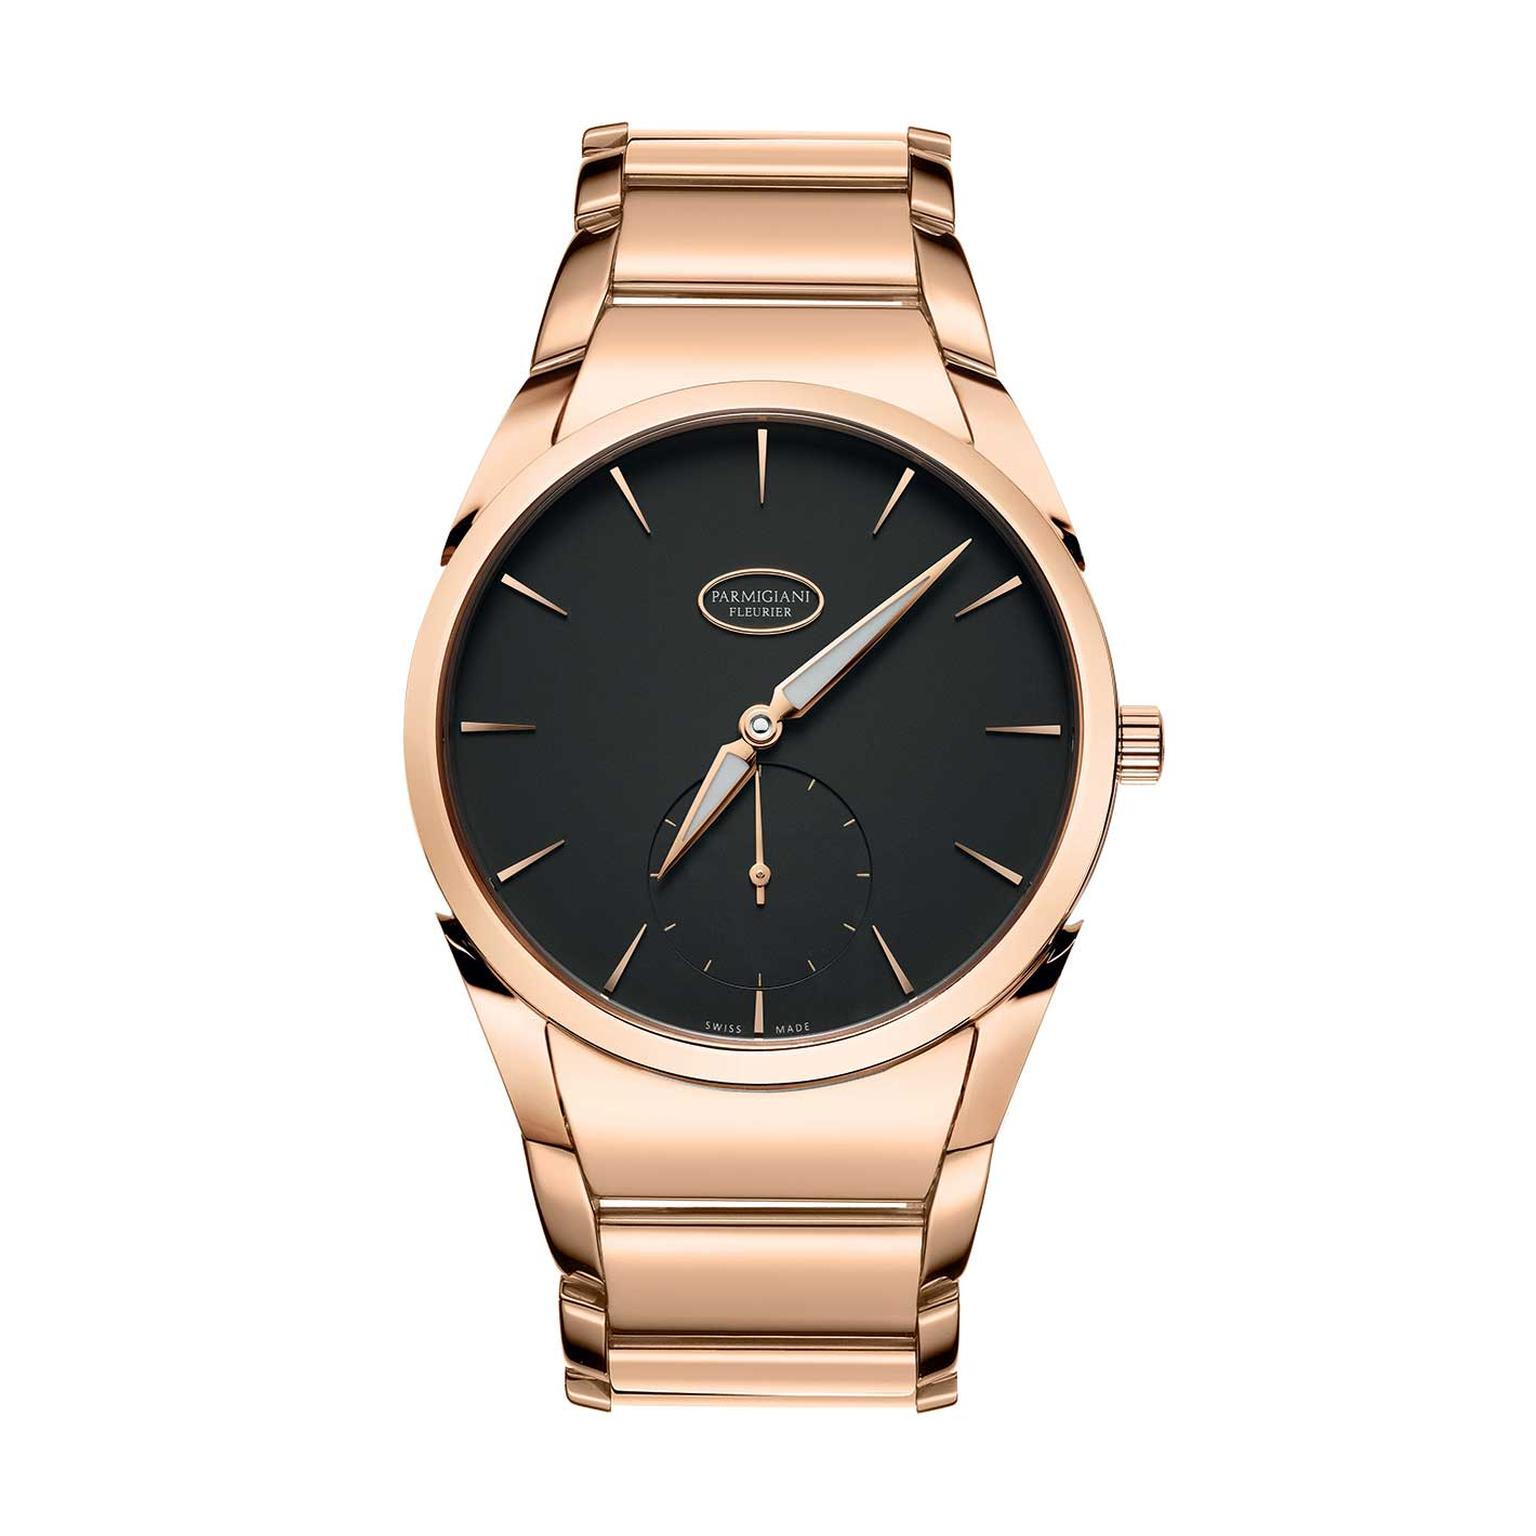 Parmigiani Tonda 1950 watch in rose gold with a graphite dial